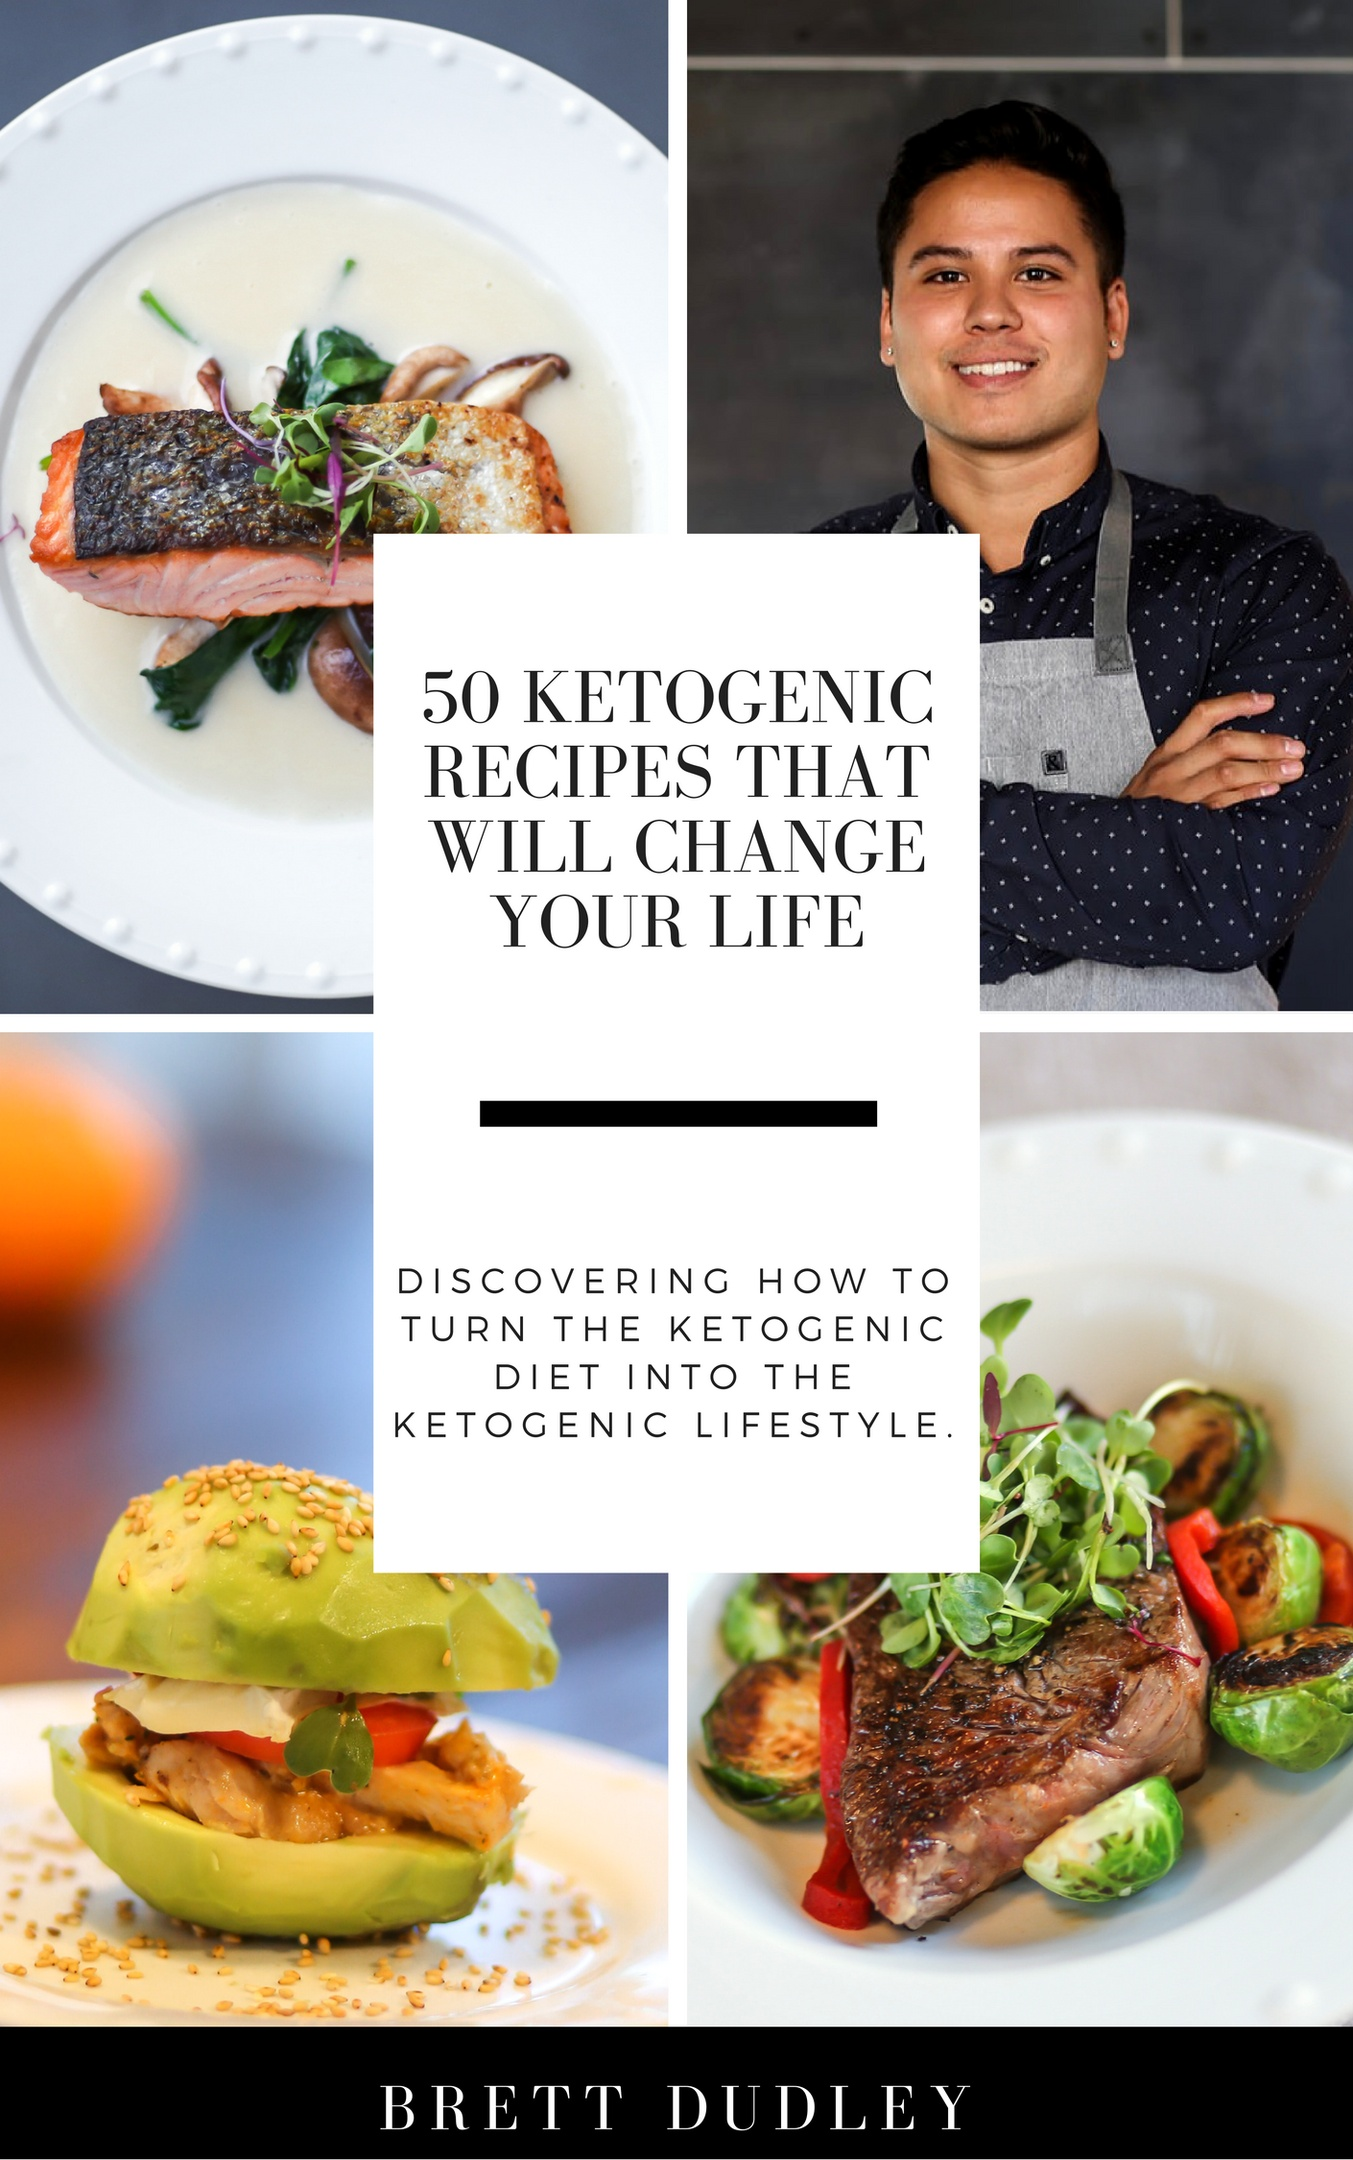 50 Ketogenic Recipes That Will Change Your Life